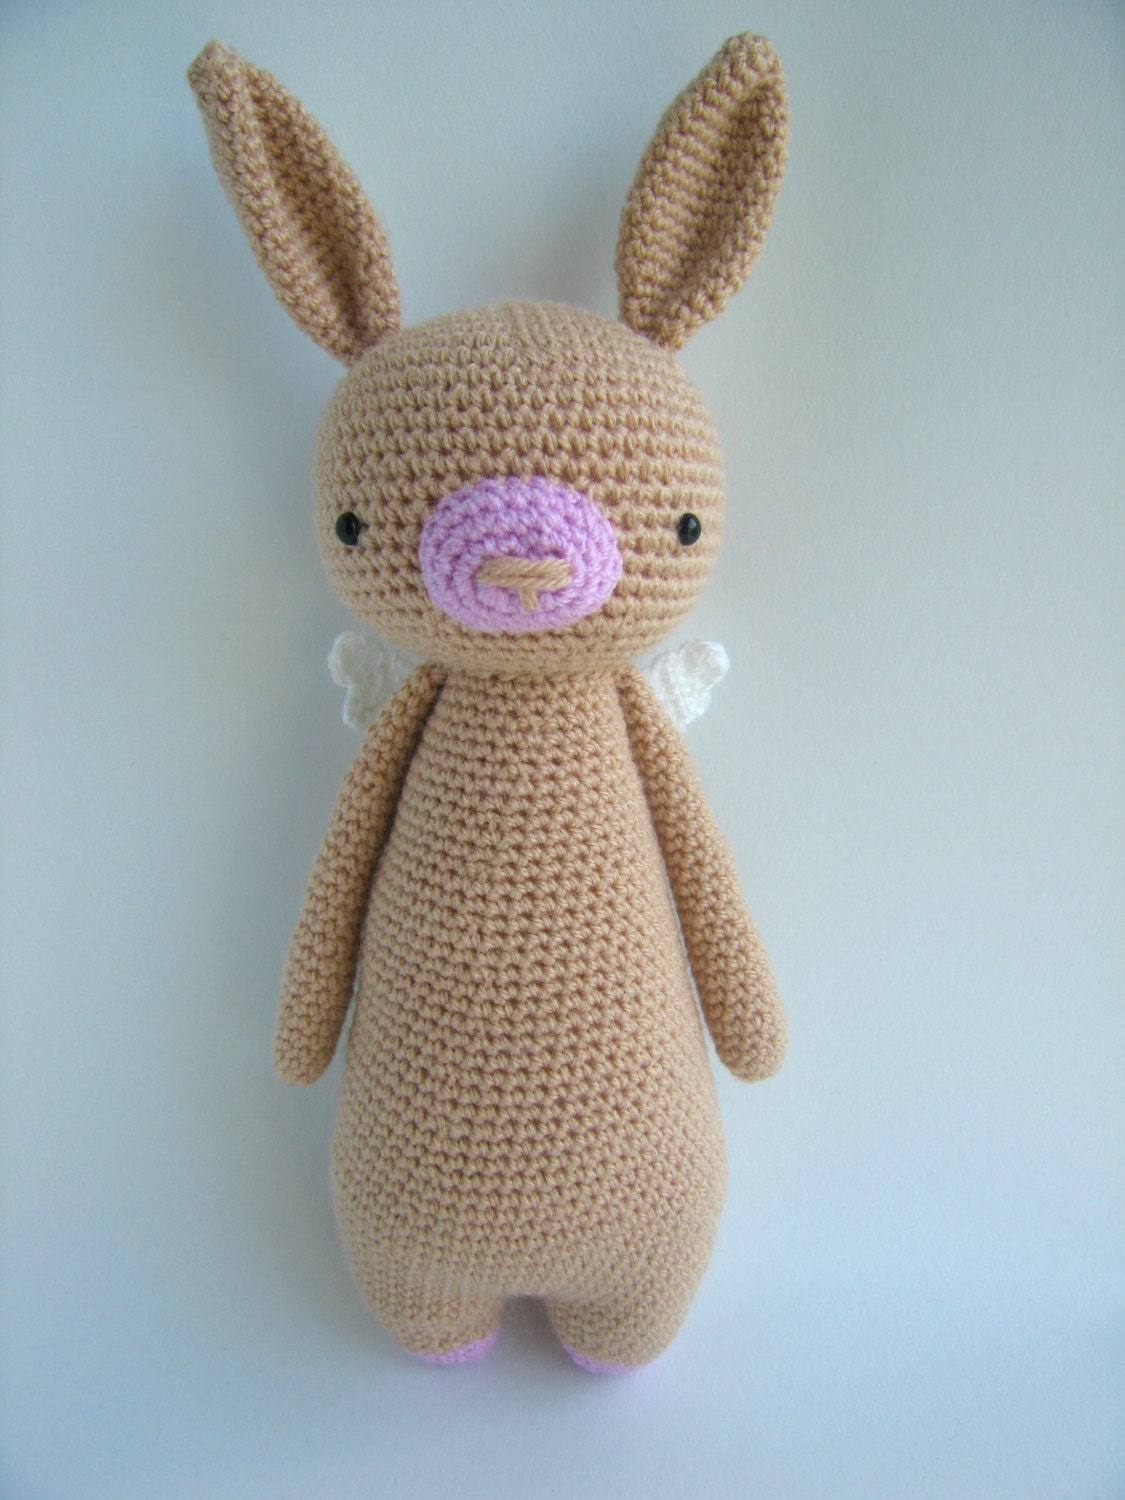 Amigurumi Pattern Rabbit : Crochet Amigurumi Pattern Rabbit